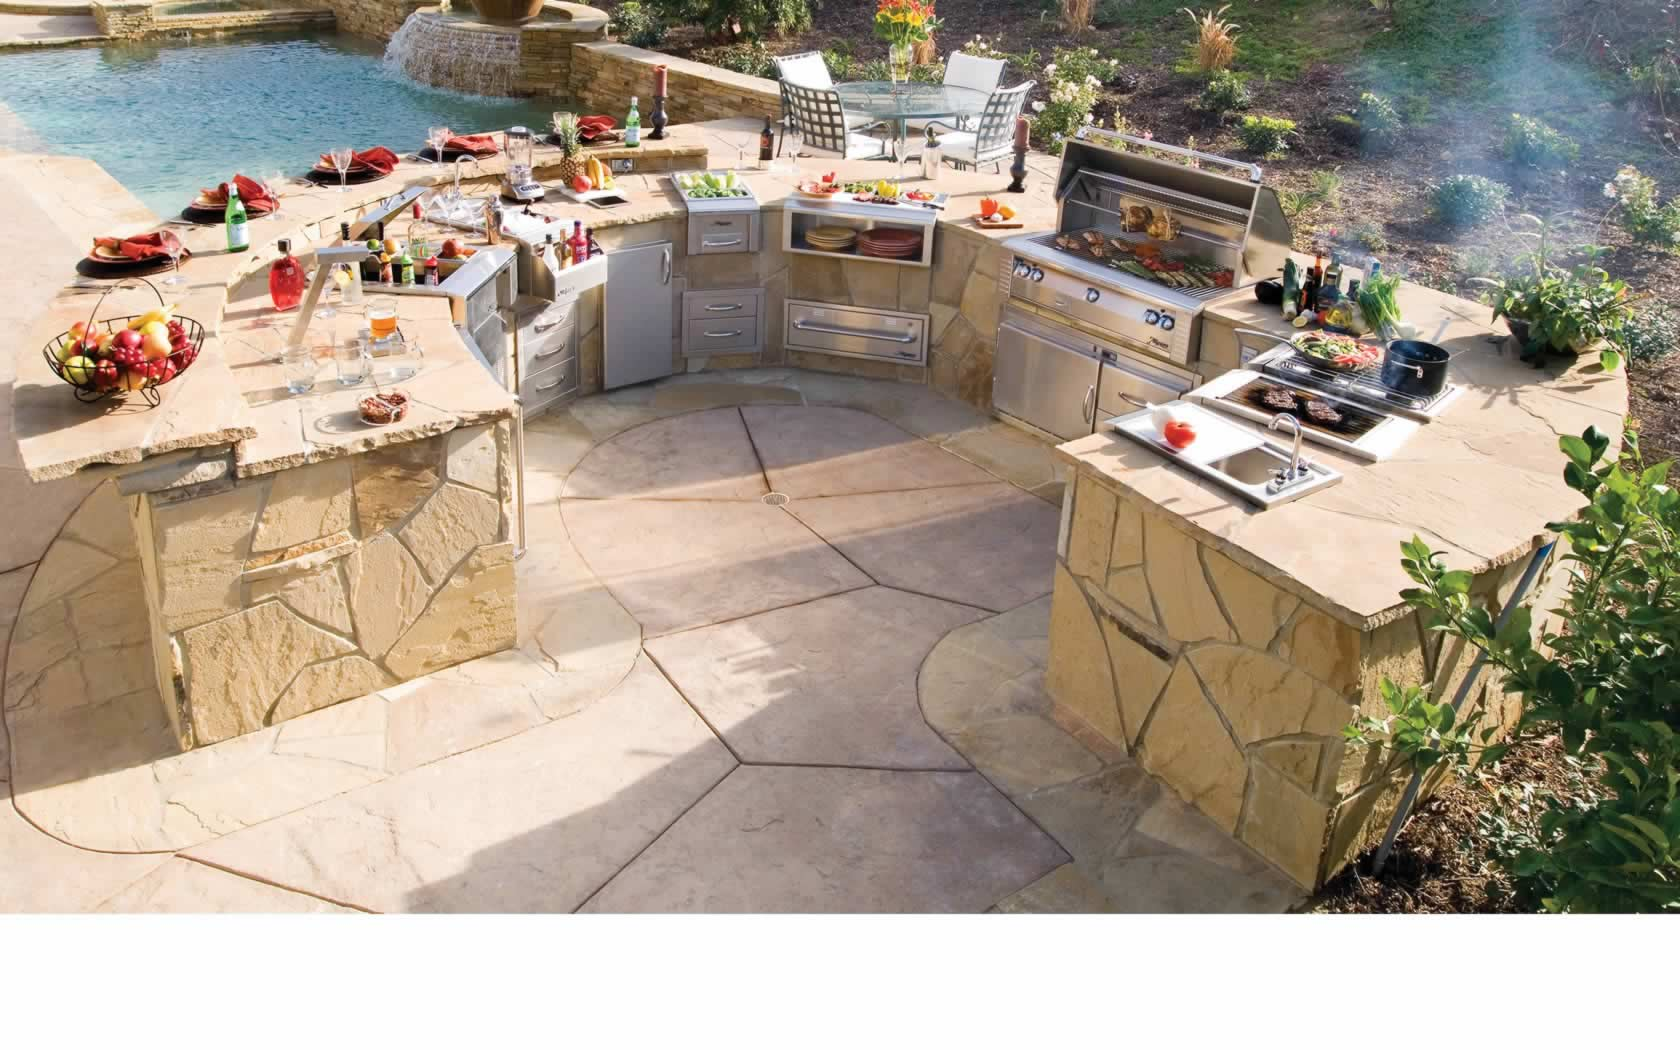 Las Vegas Outdoor Kitchens And Barbecues Las Vegas Outdoor Kitchen And Barb